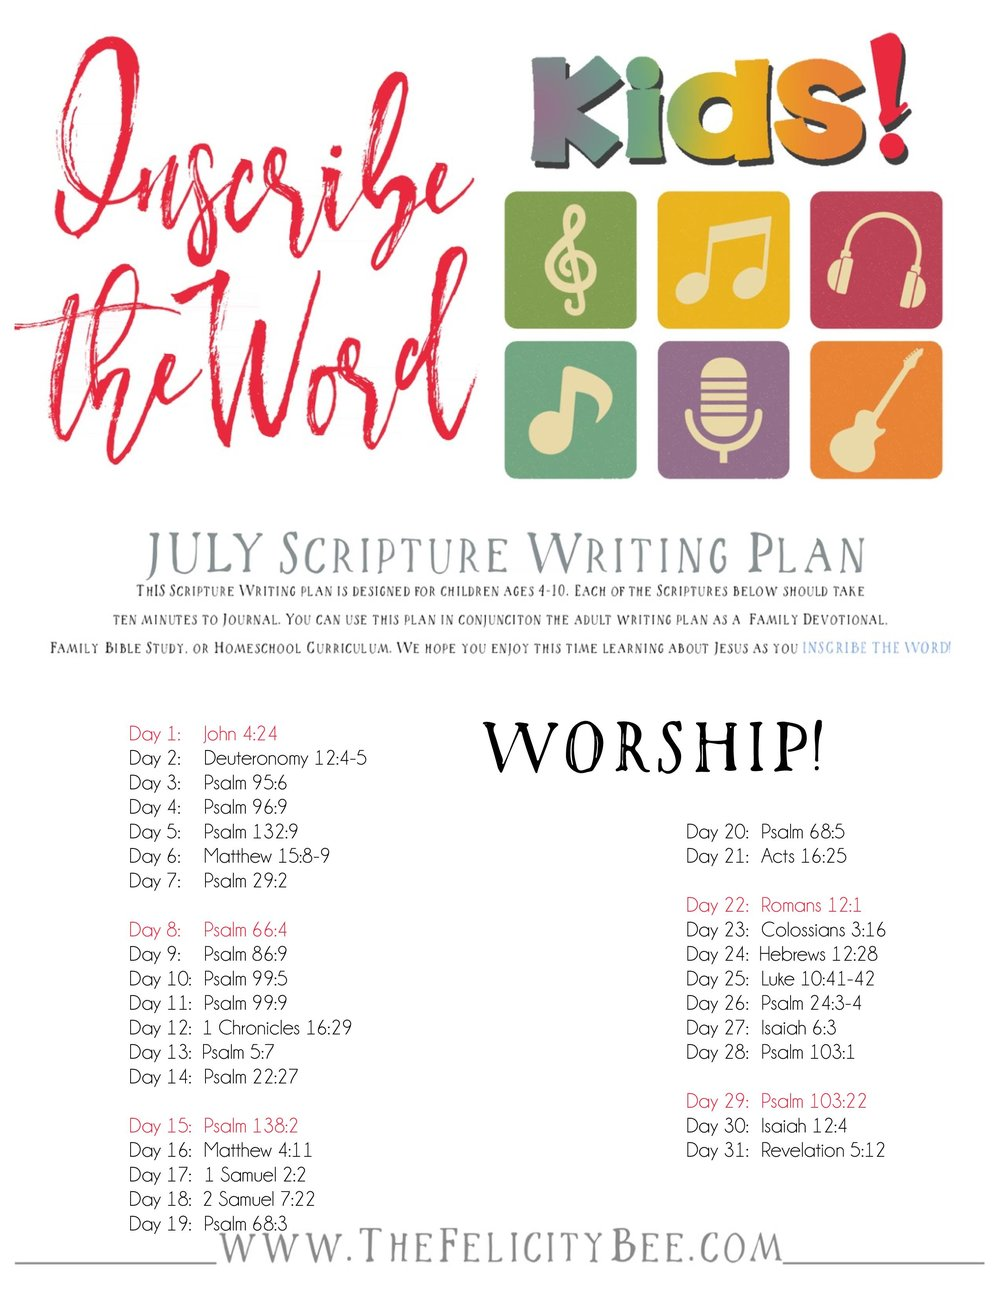 Inscribe the Word Scripture Writing Plan for Kids June 2017